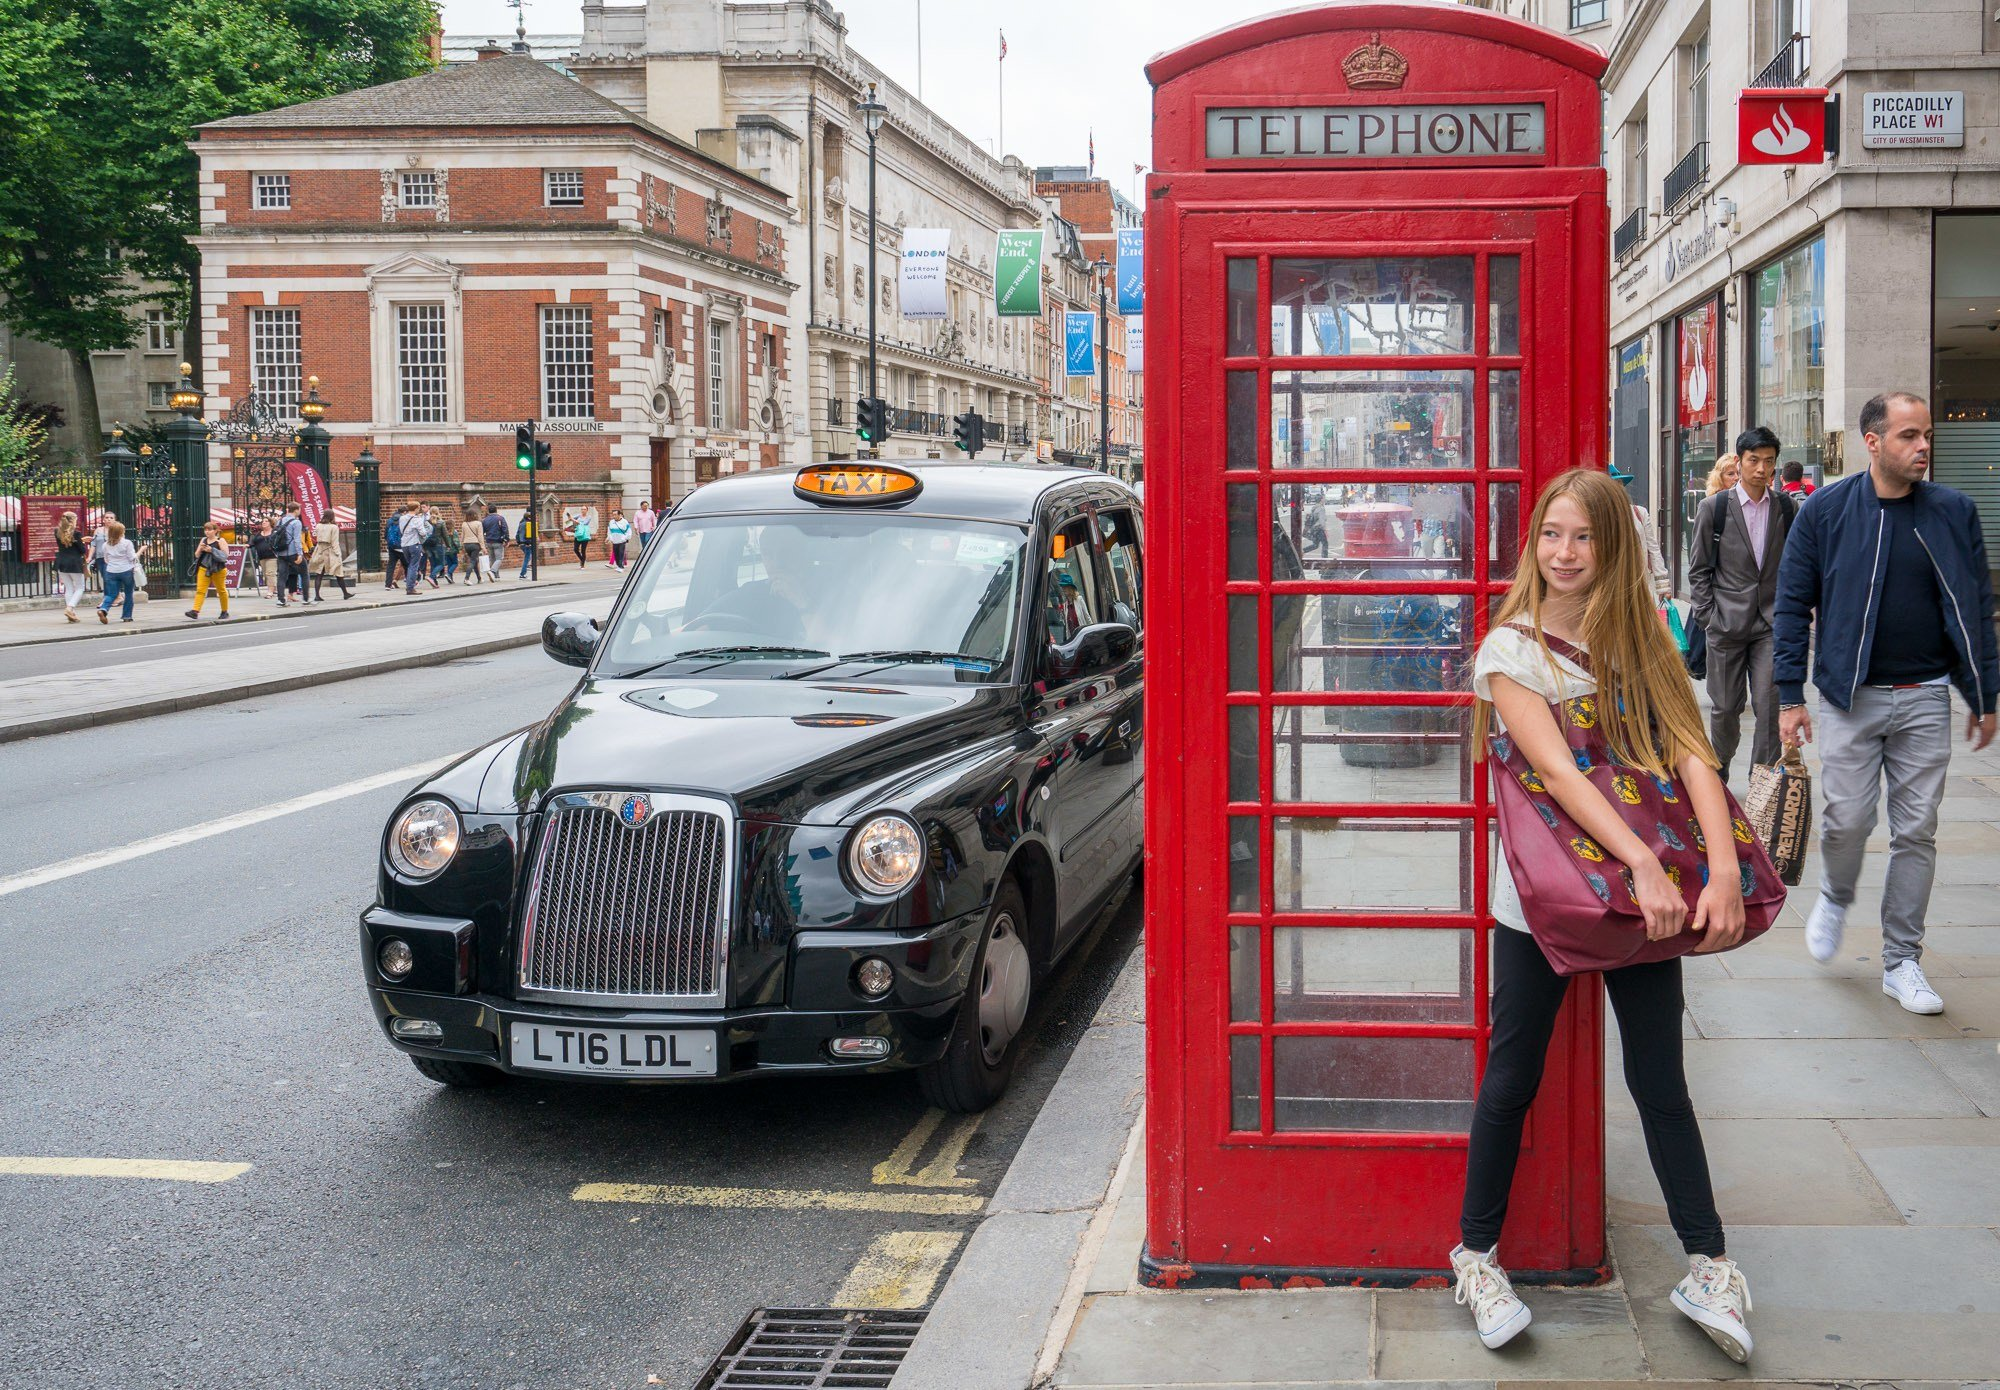 What's more London than a black cab and red phone booth?